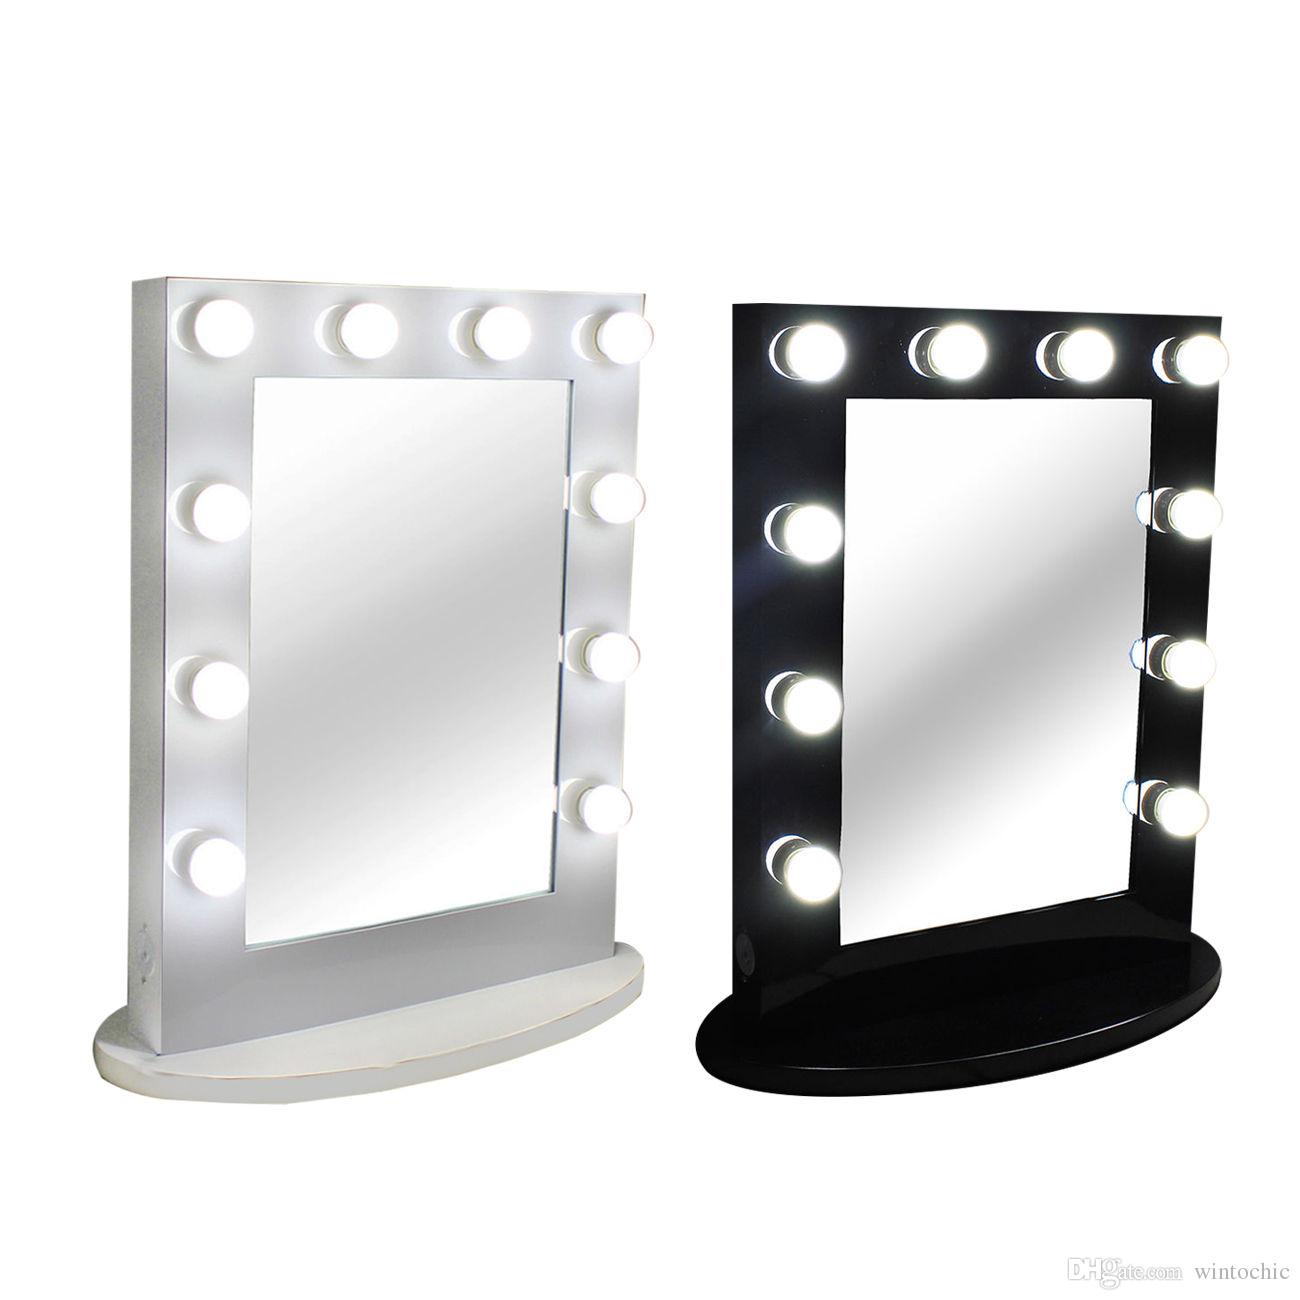 Hollywood Tabletops Makeup Lighted Mirror Vanity Light With Dimmer Aluminum  Frame Stage Beauty Mirror Free 12 Led Bulbs Mirrors For Bathrooms Mirrors  With. Hollywood Tabletops Makeup Lighted Mirror Vanity Light With Dimmer